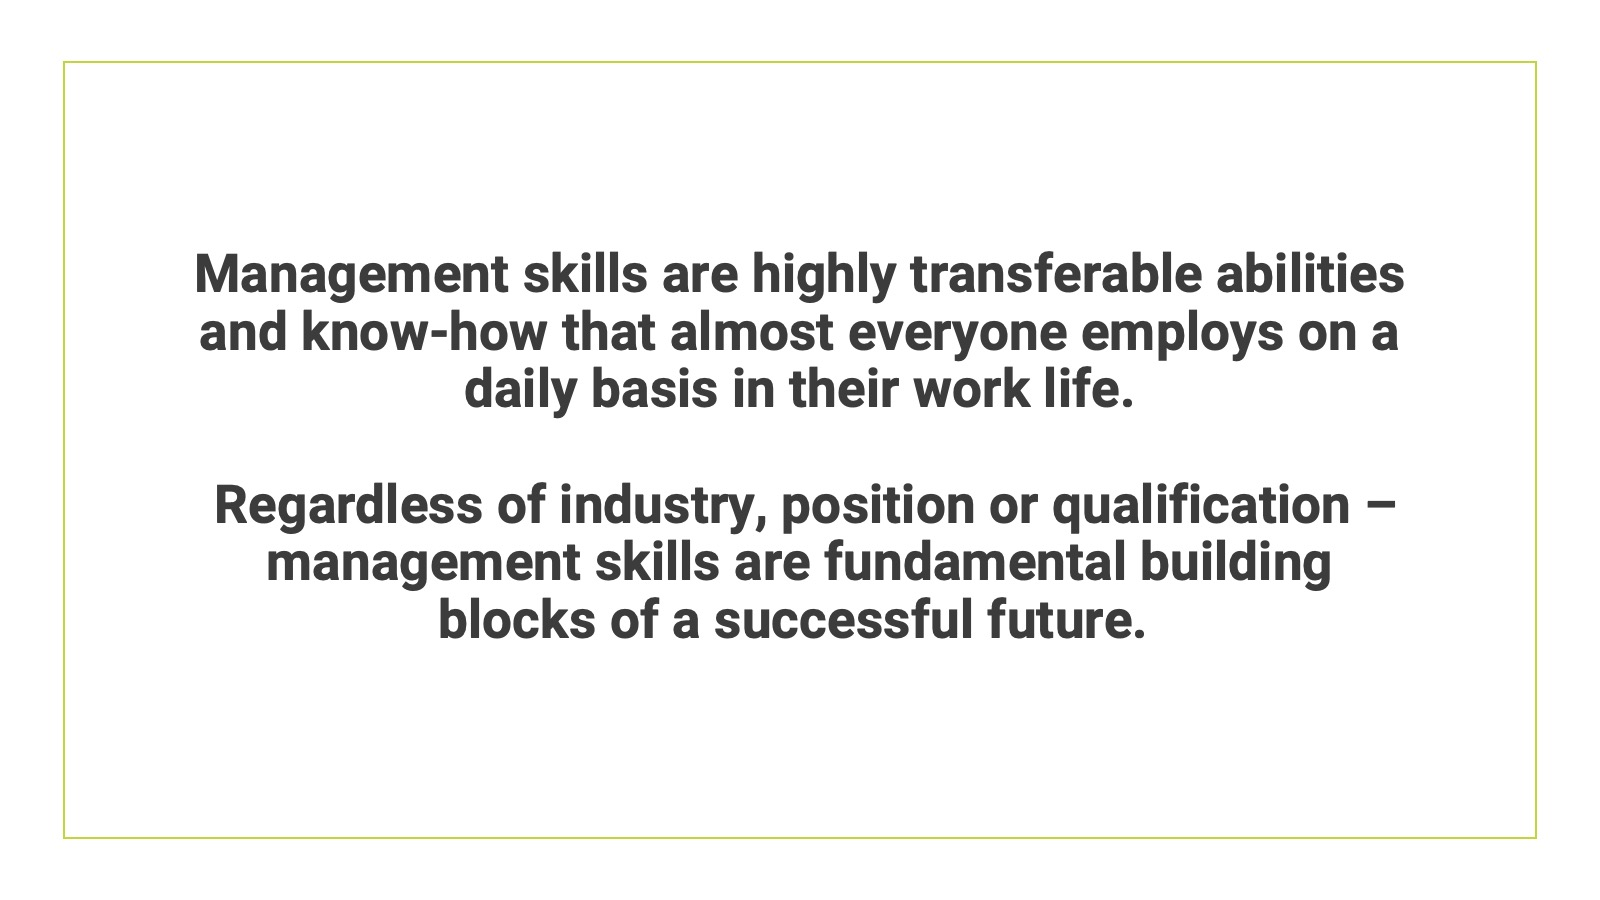 Why management skills?